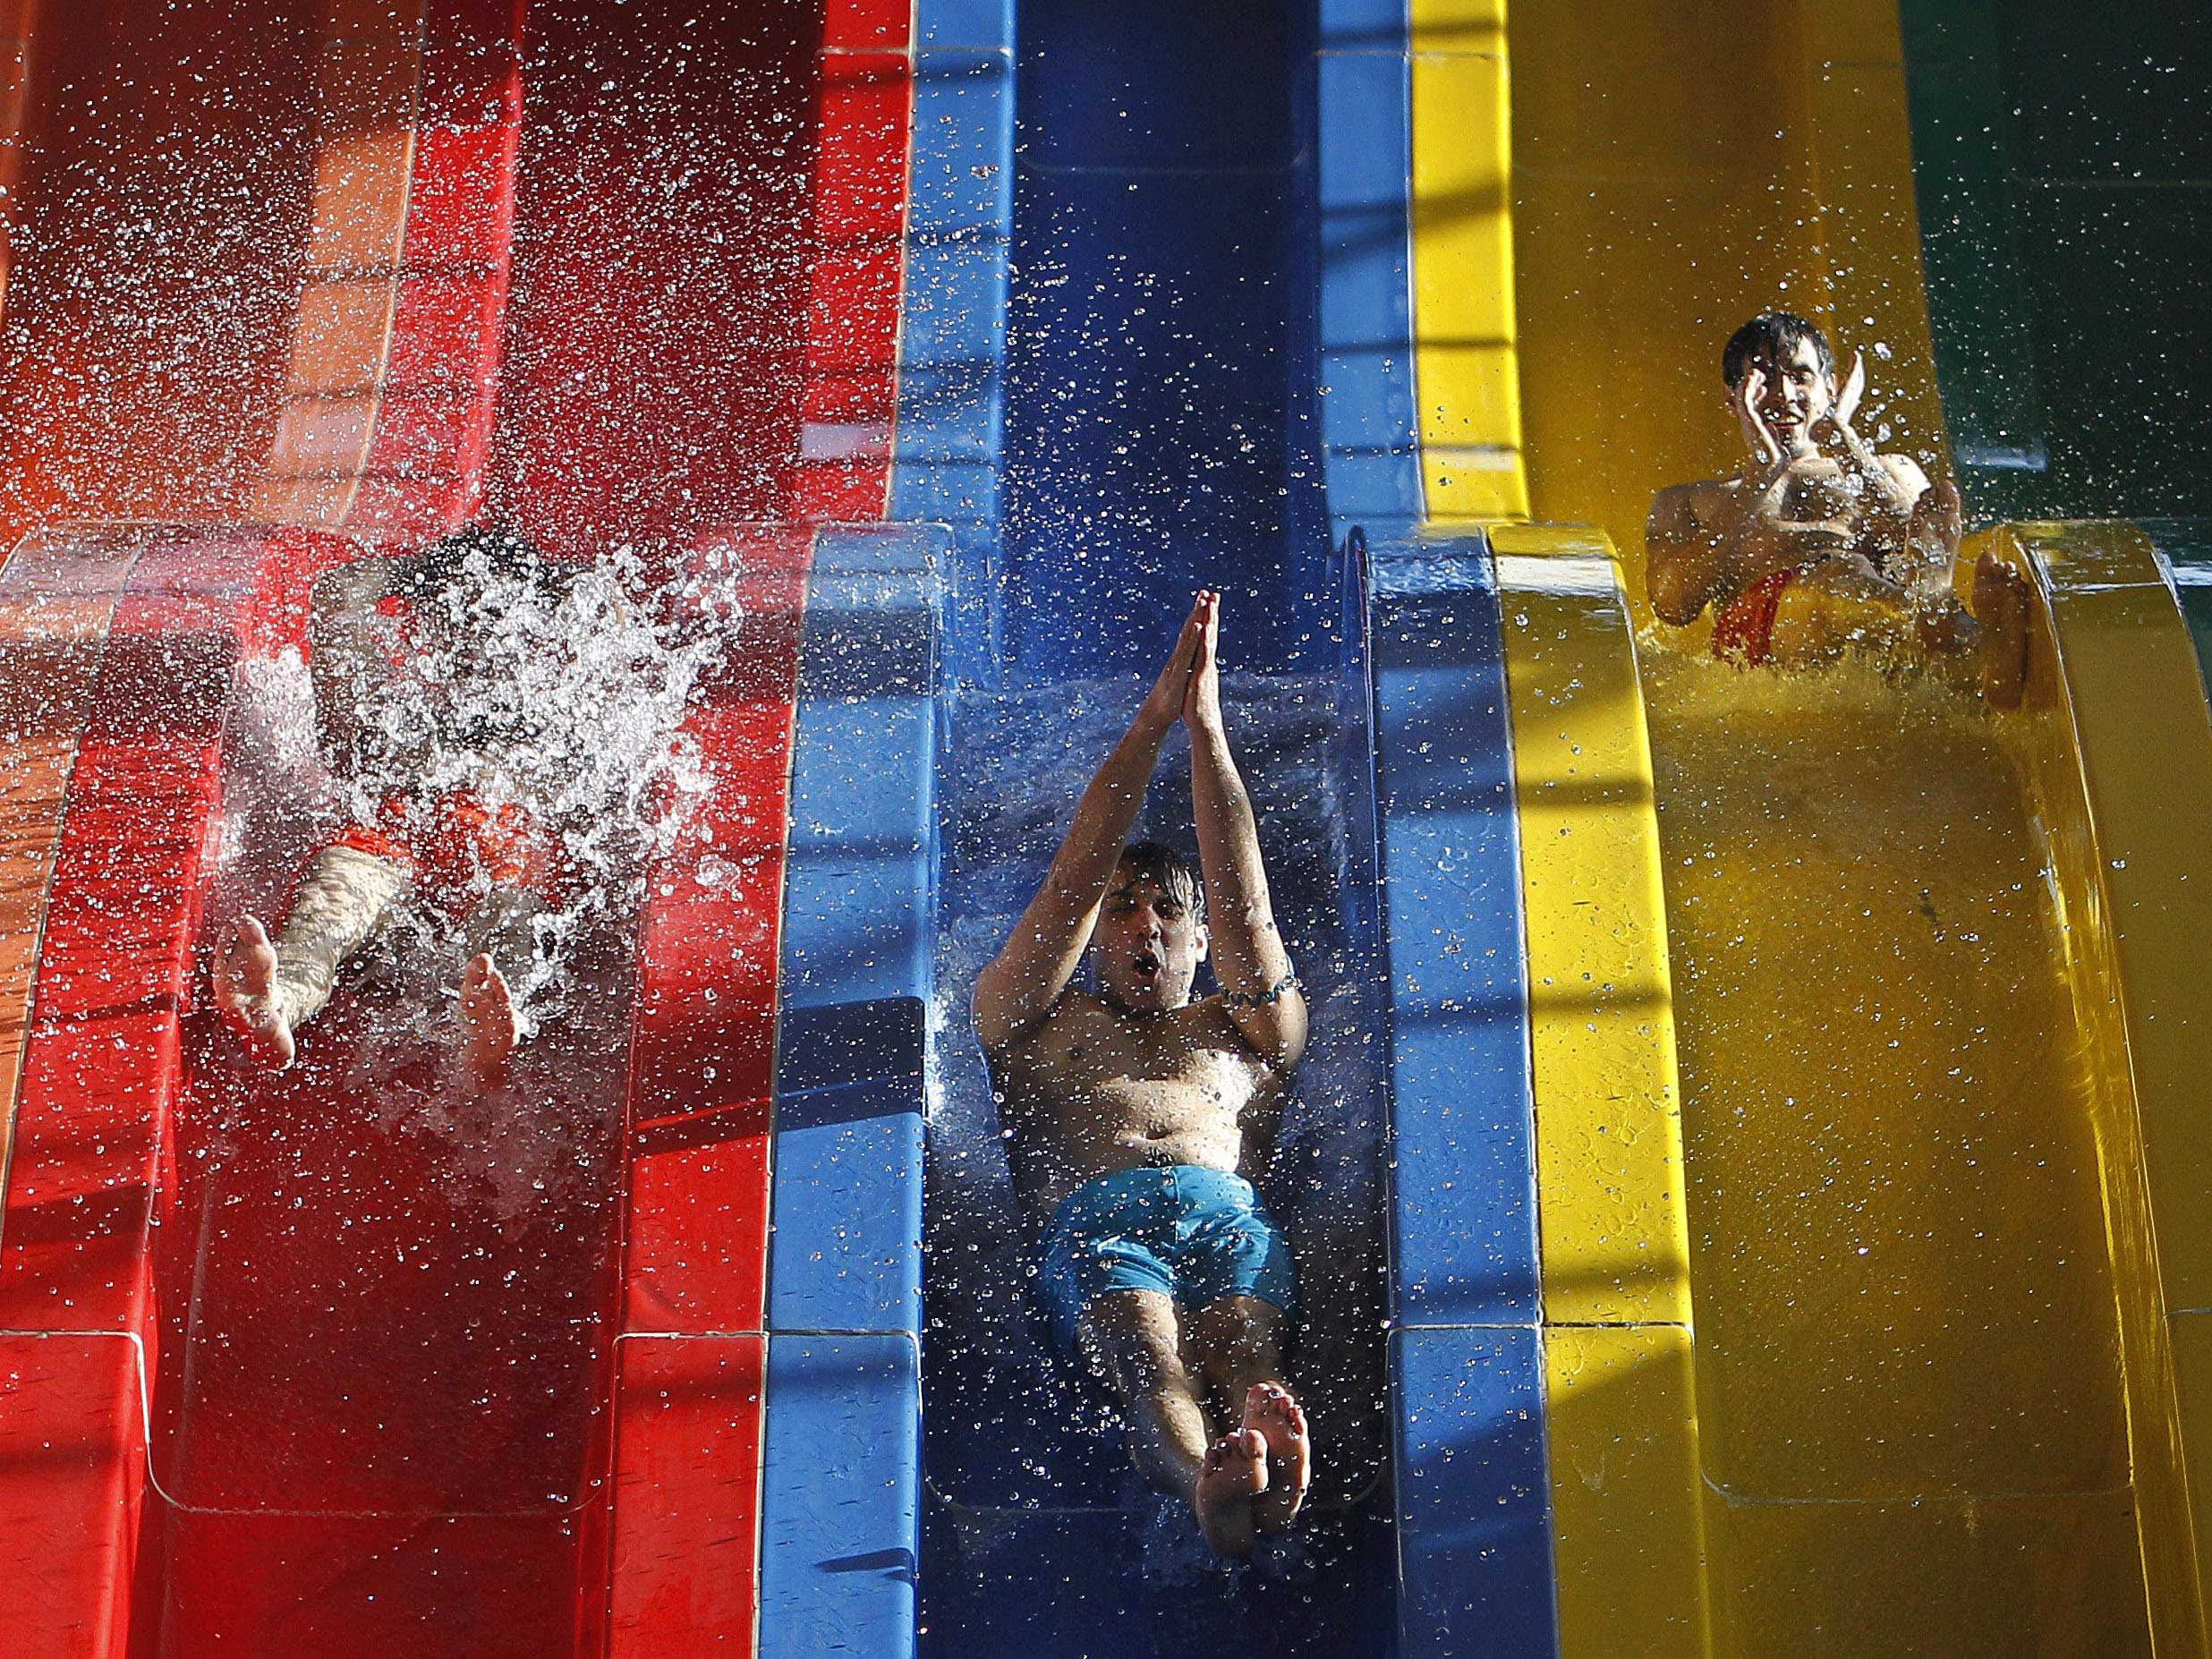 Kabul water park boys on slides